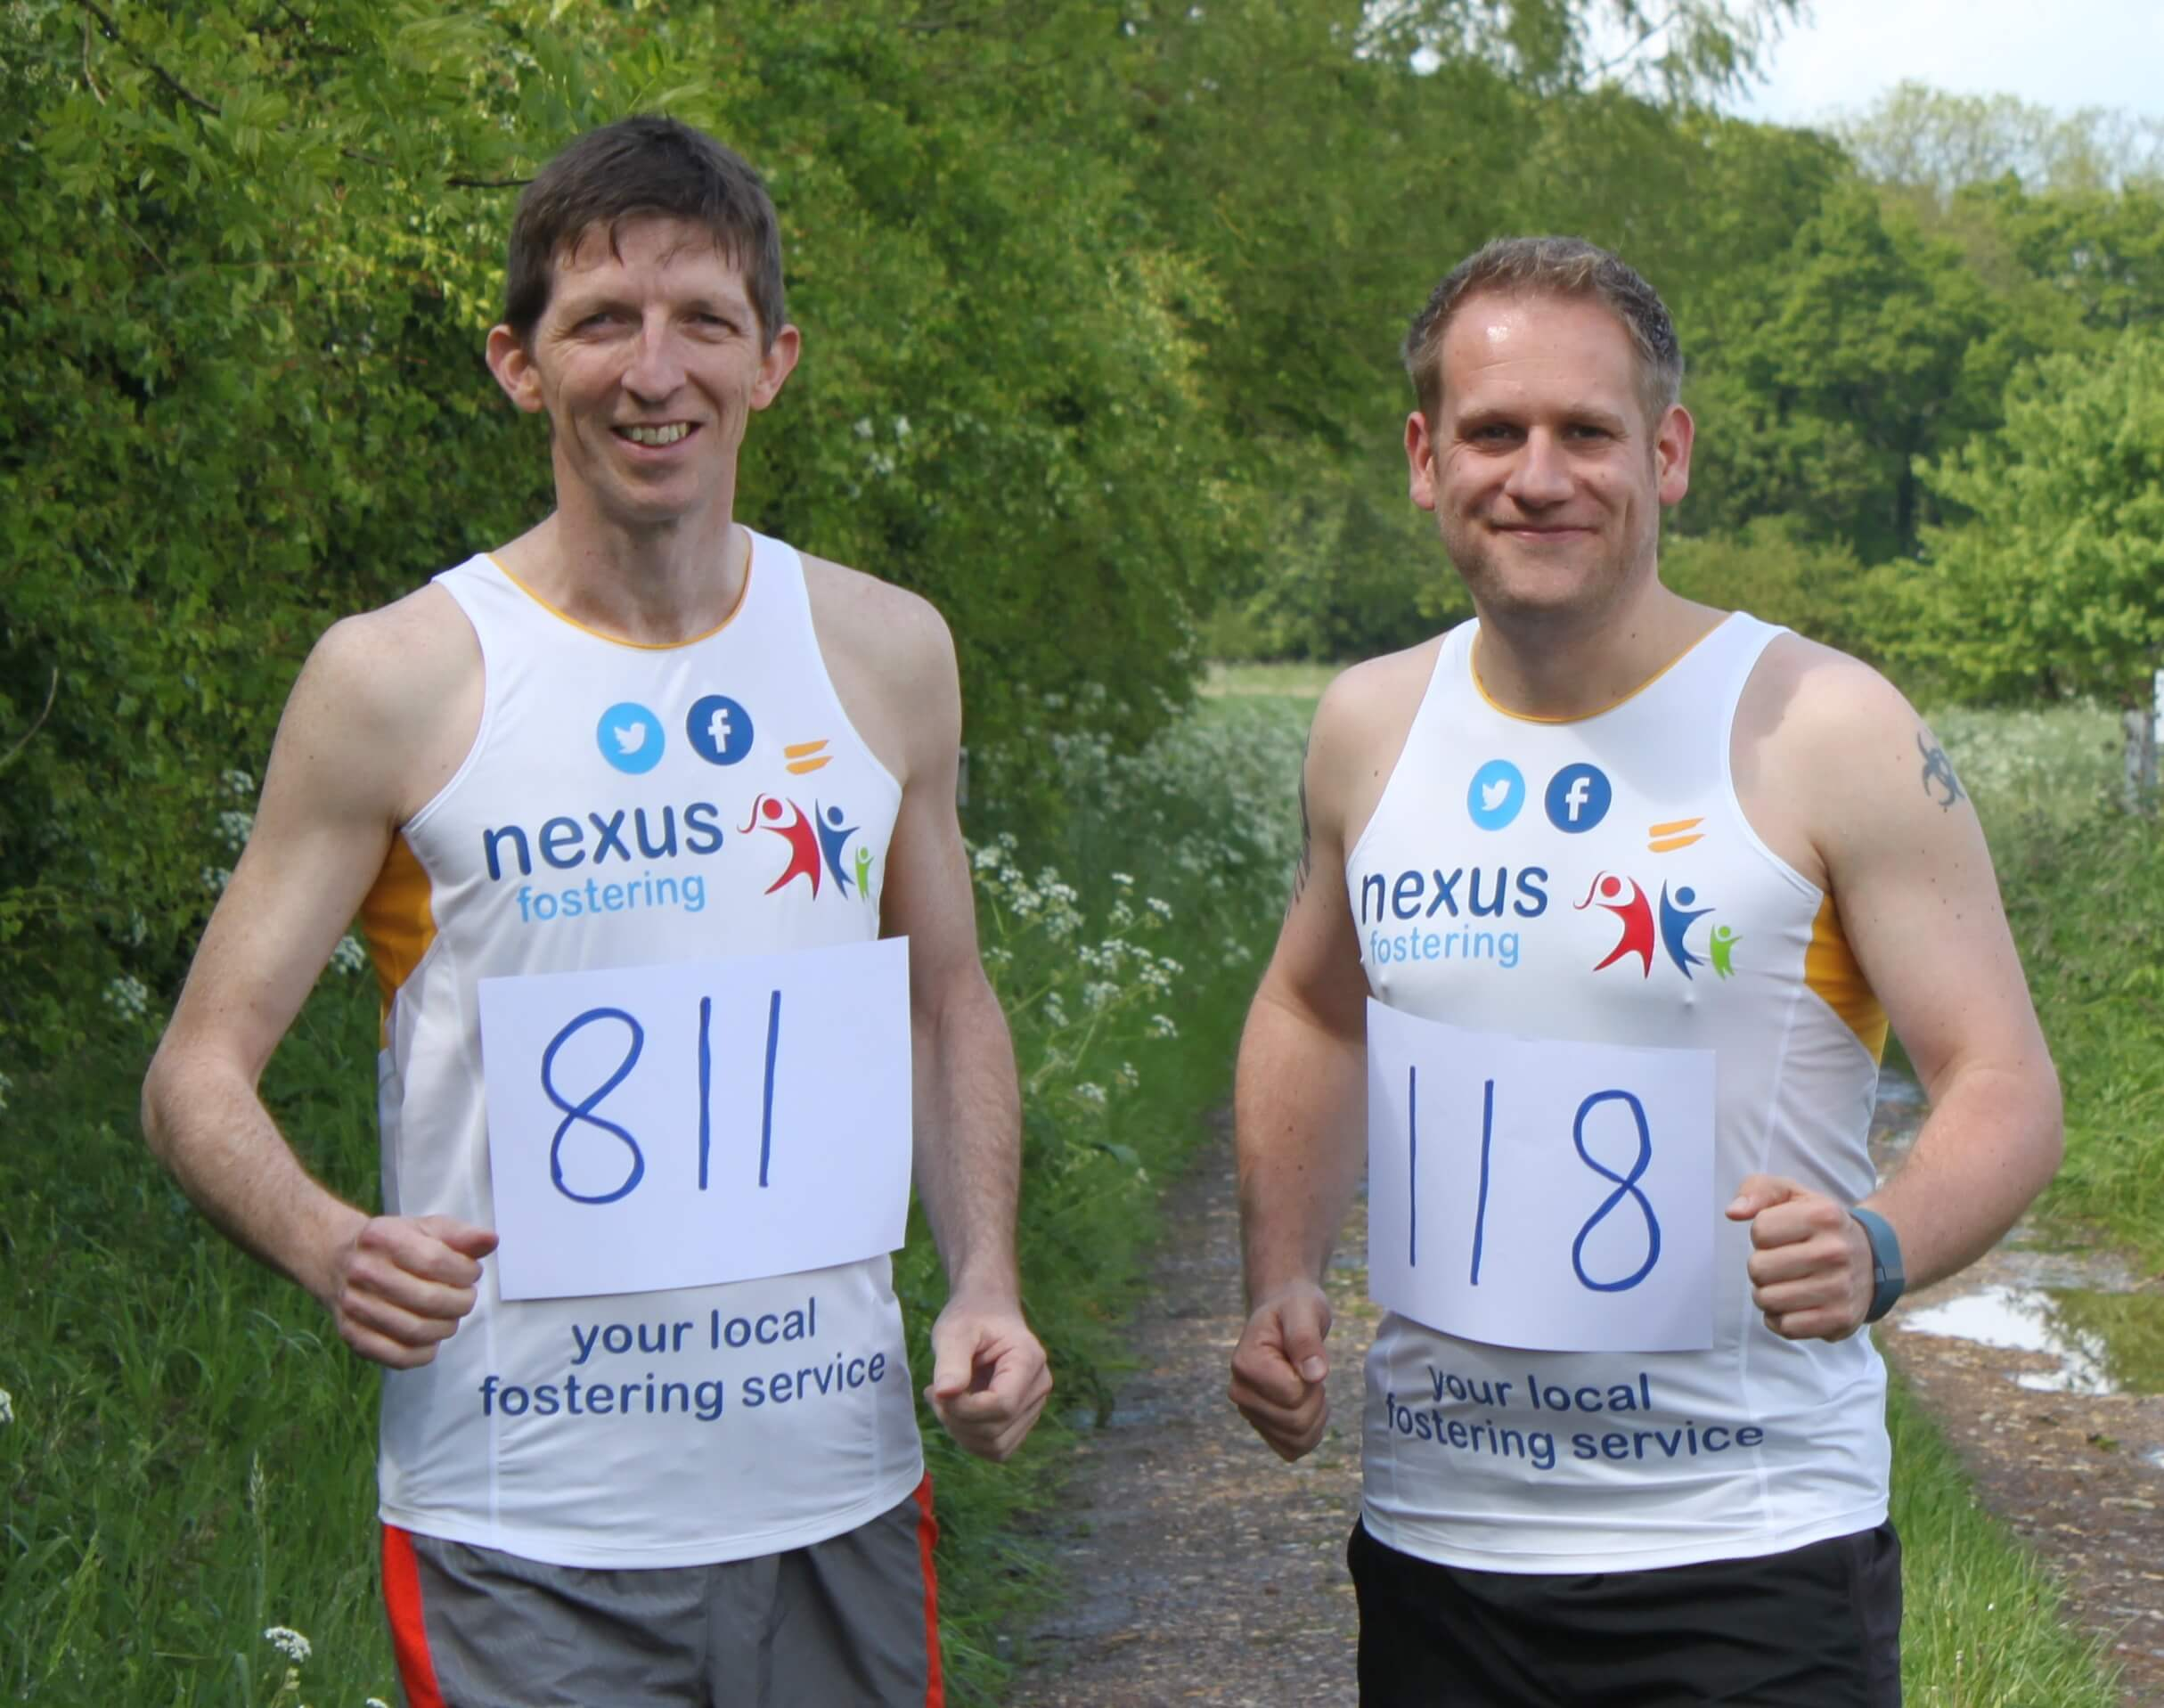 Steve and Rob in training for their runs